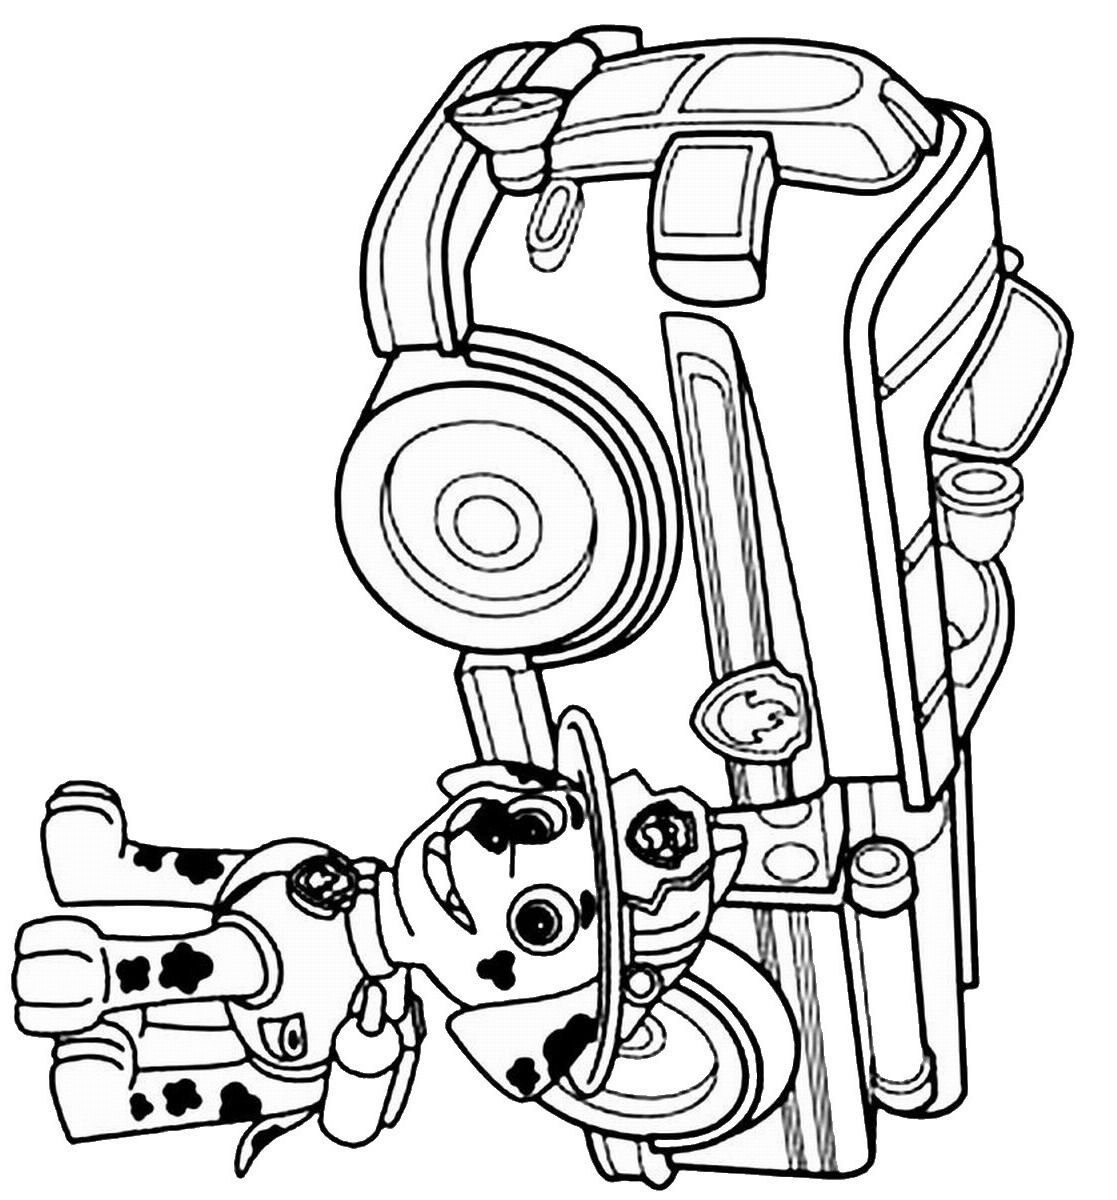 coloring images paw patrol paw patrol coloring pages downoadable k5 worksheets coloring images paw patrol